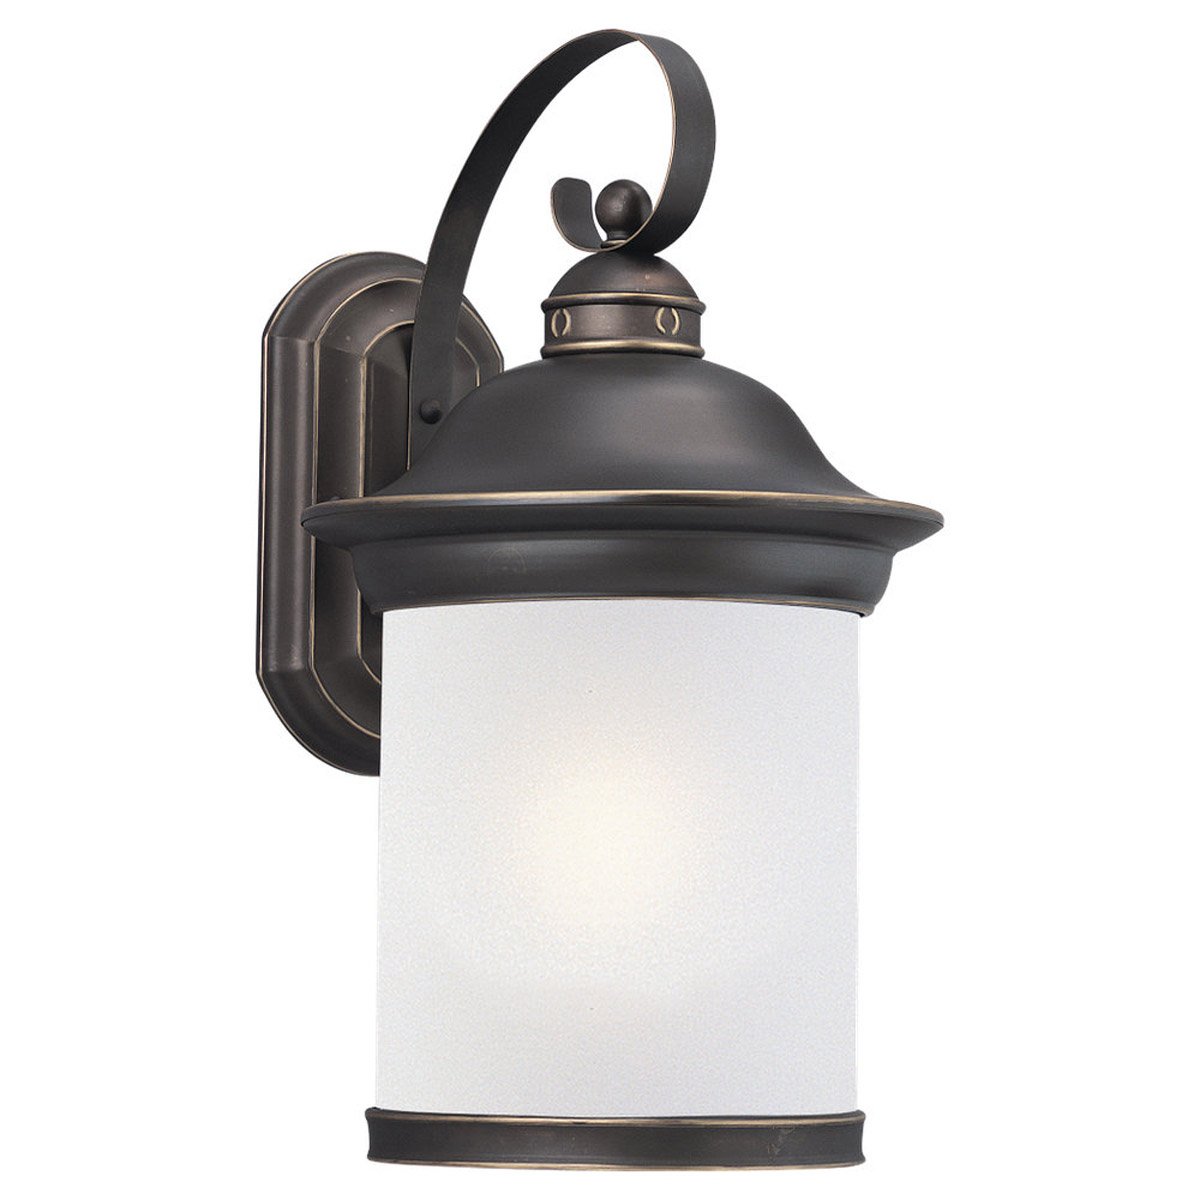 Sea Gull Lighting Hermitage 1 Light Outdoor Wall Lantern in Antique Bronze 89193PBLE-71